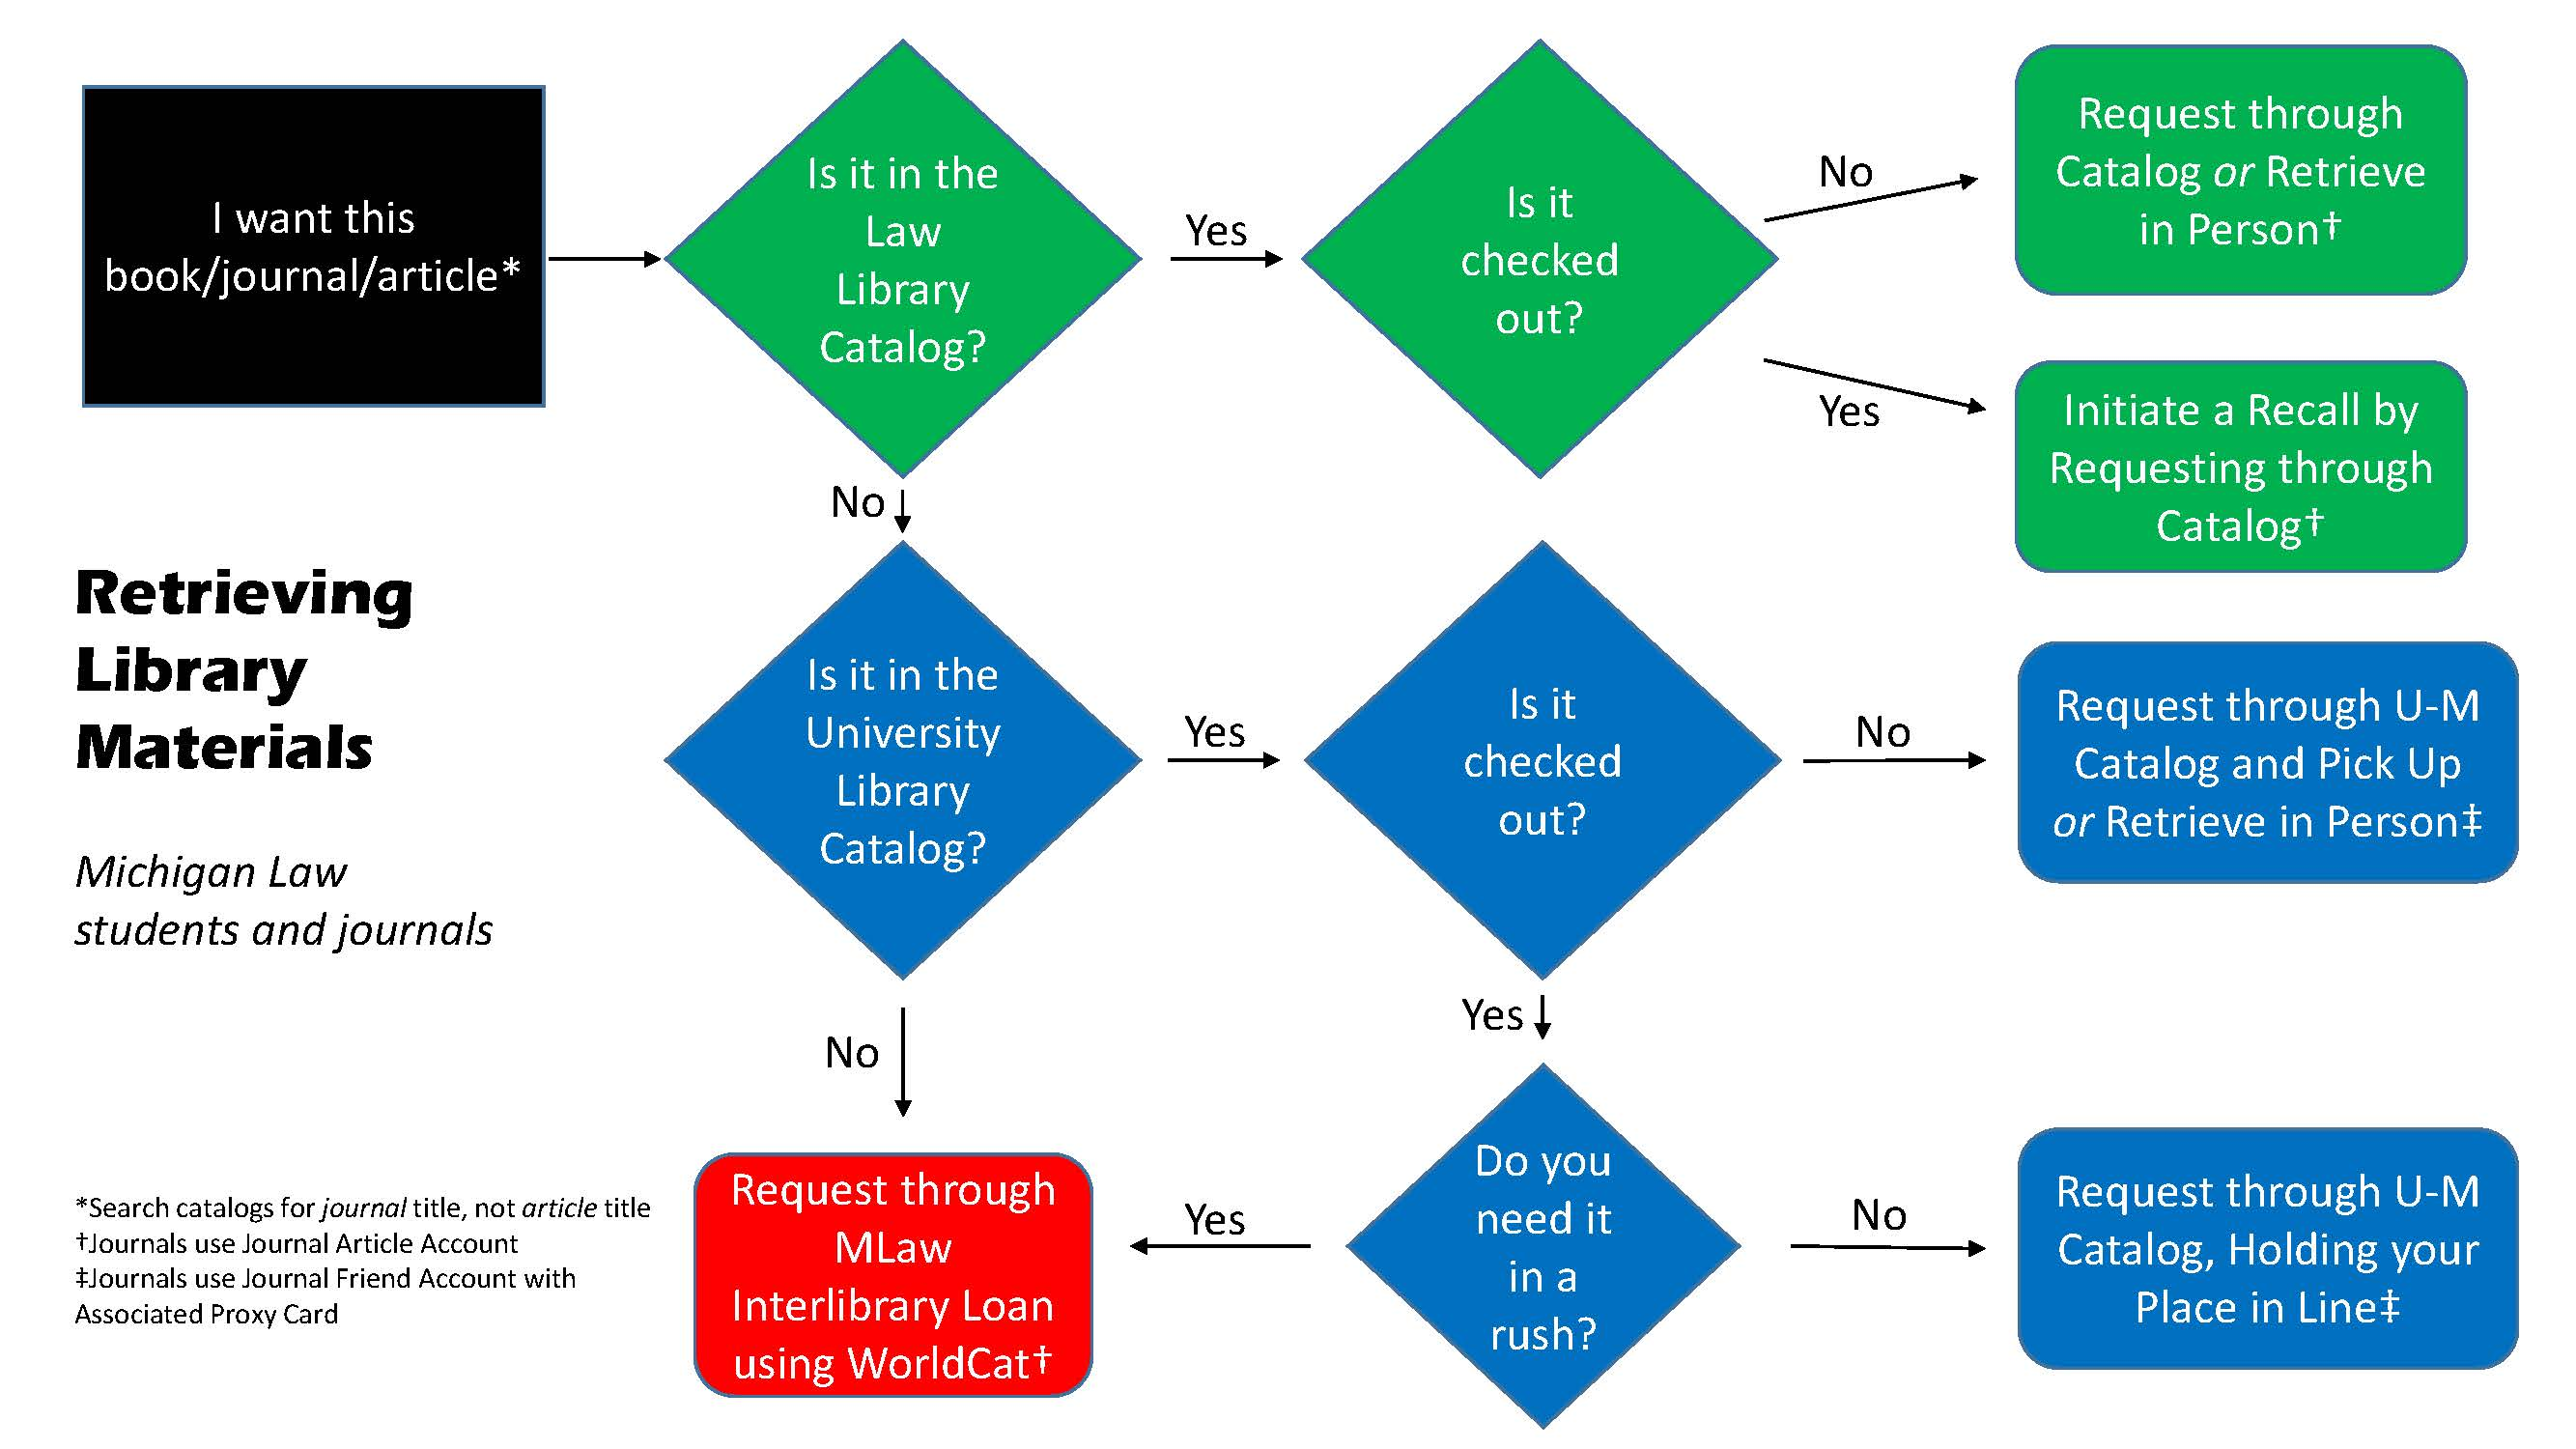 Interlibrary Loan decision tree